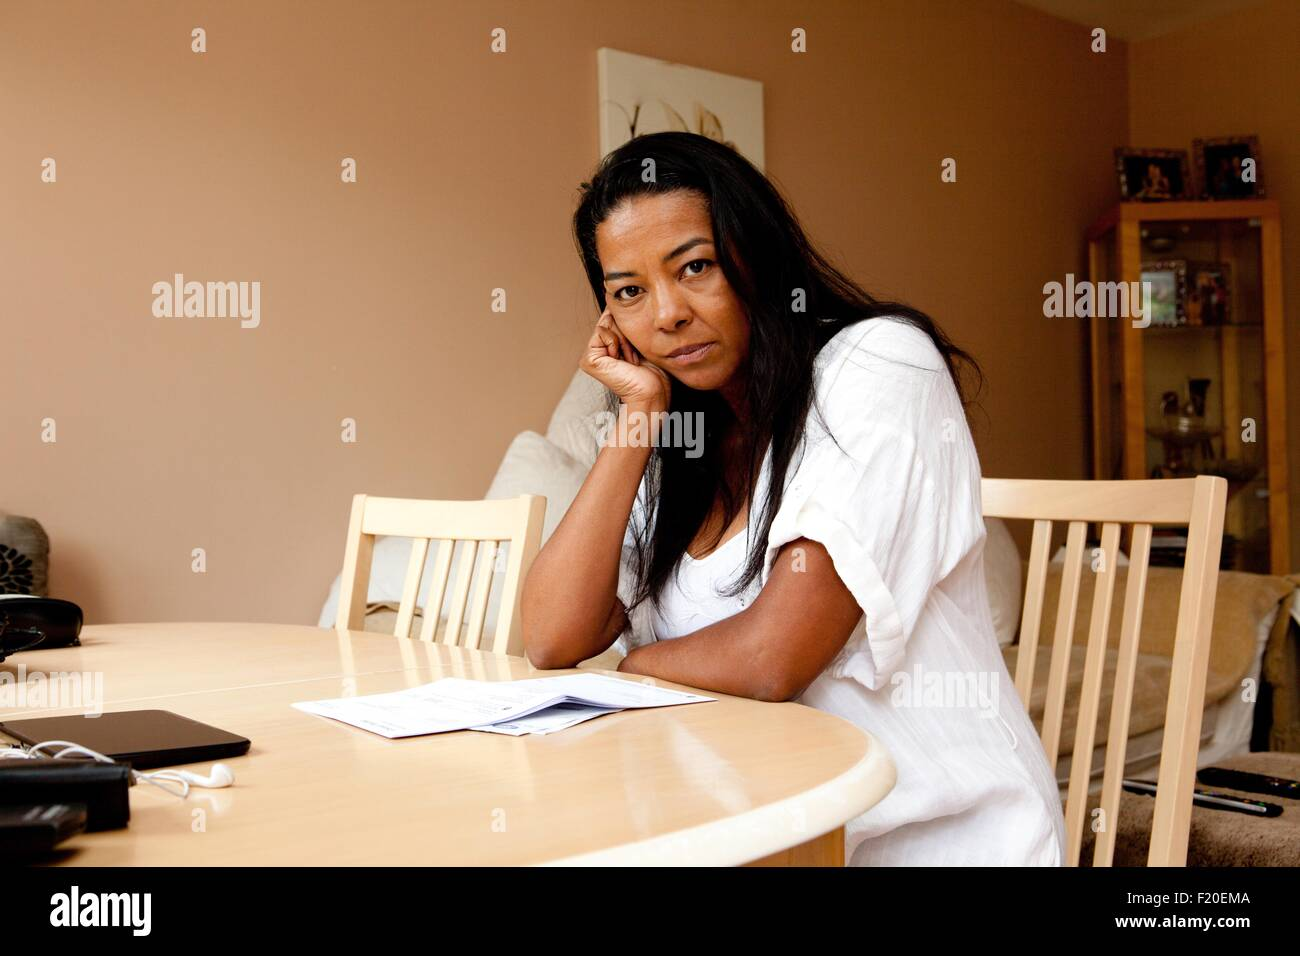 Portrait of fed up mature woman sitting at dining table reading bill - Stock Image